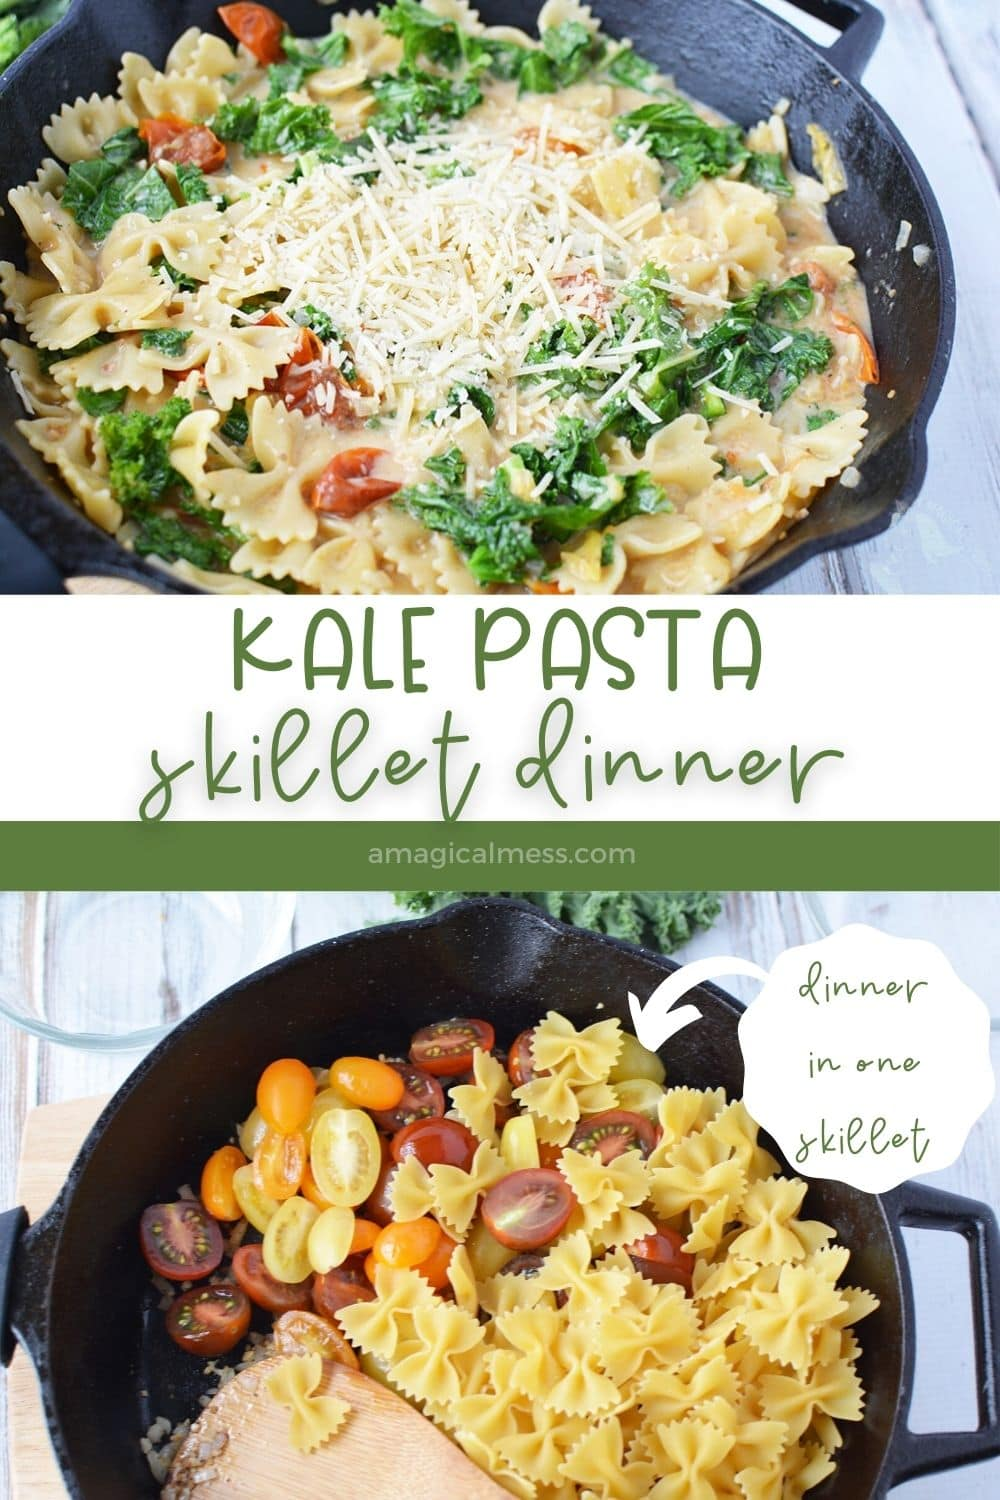 kale skillet dinner with pasta and other veggies